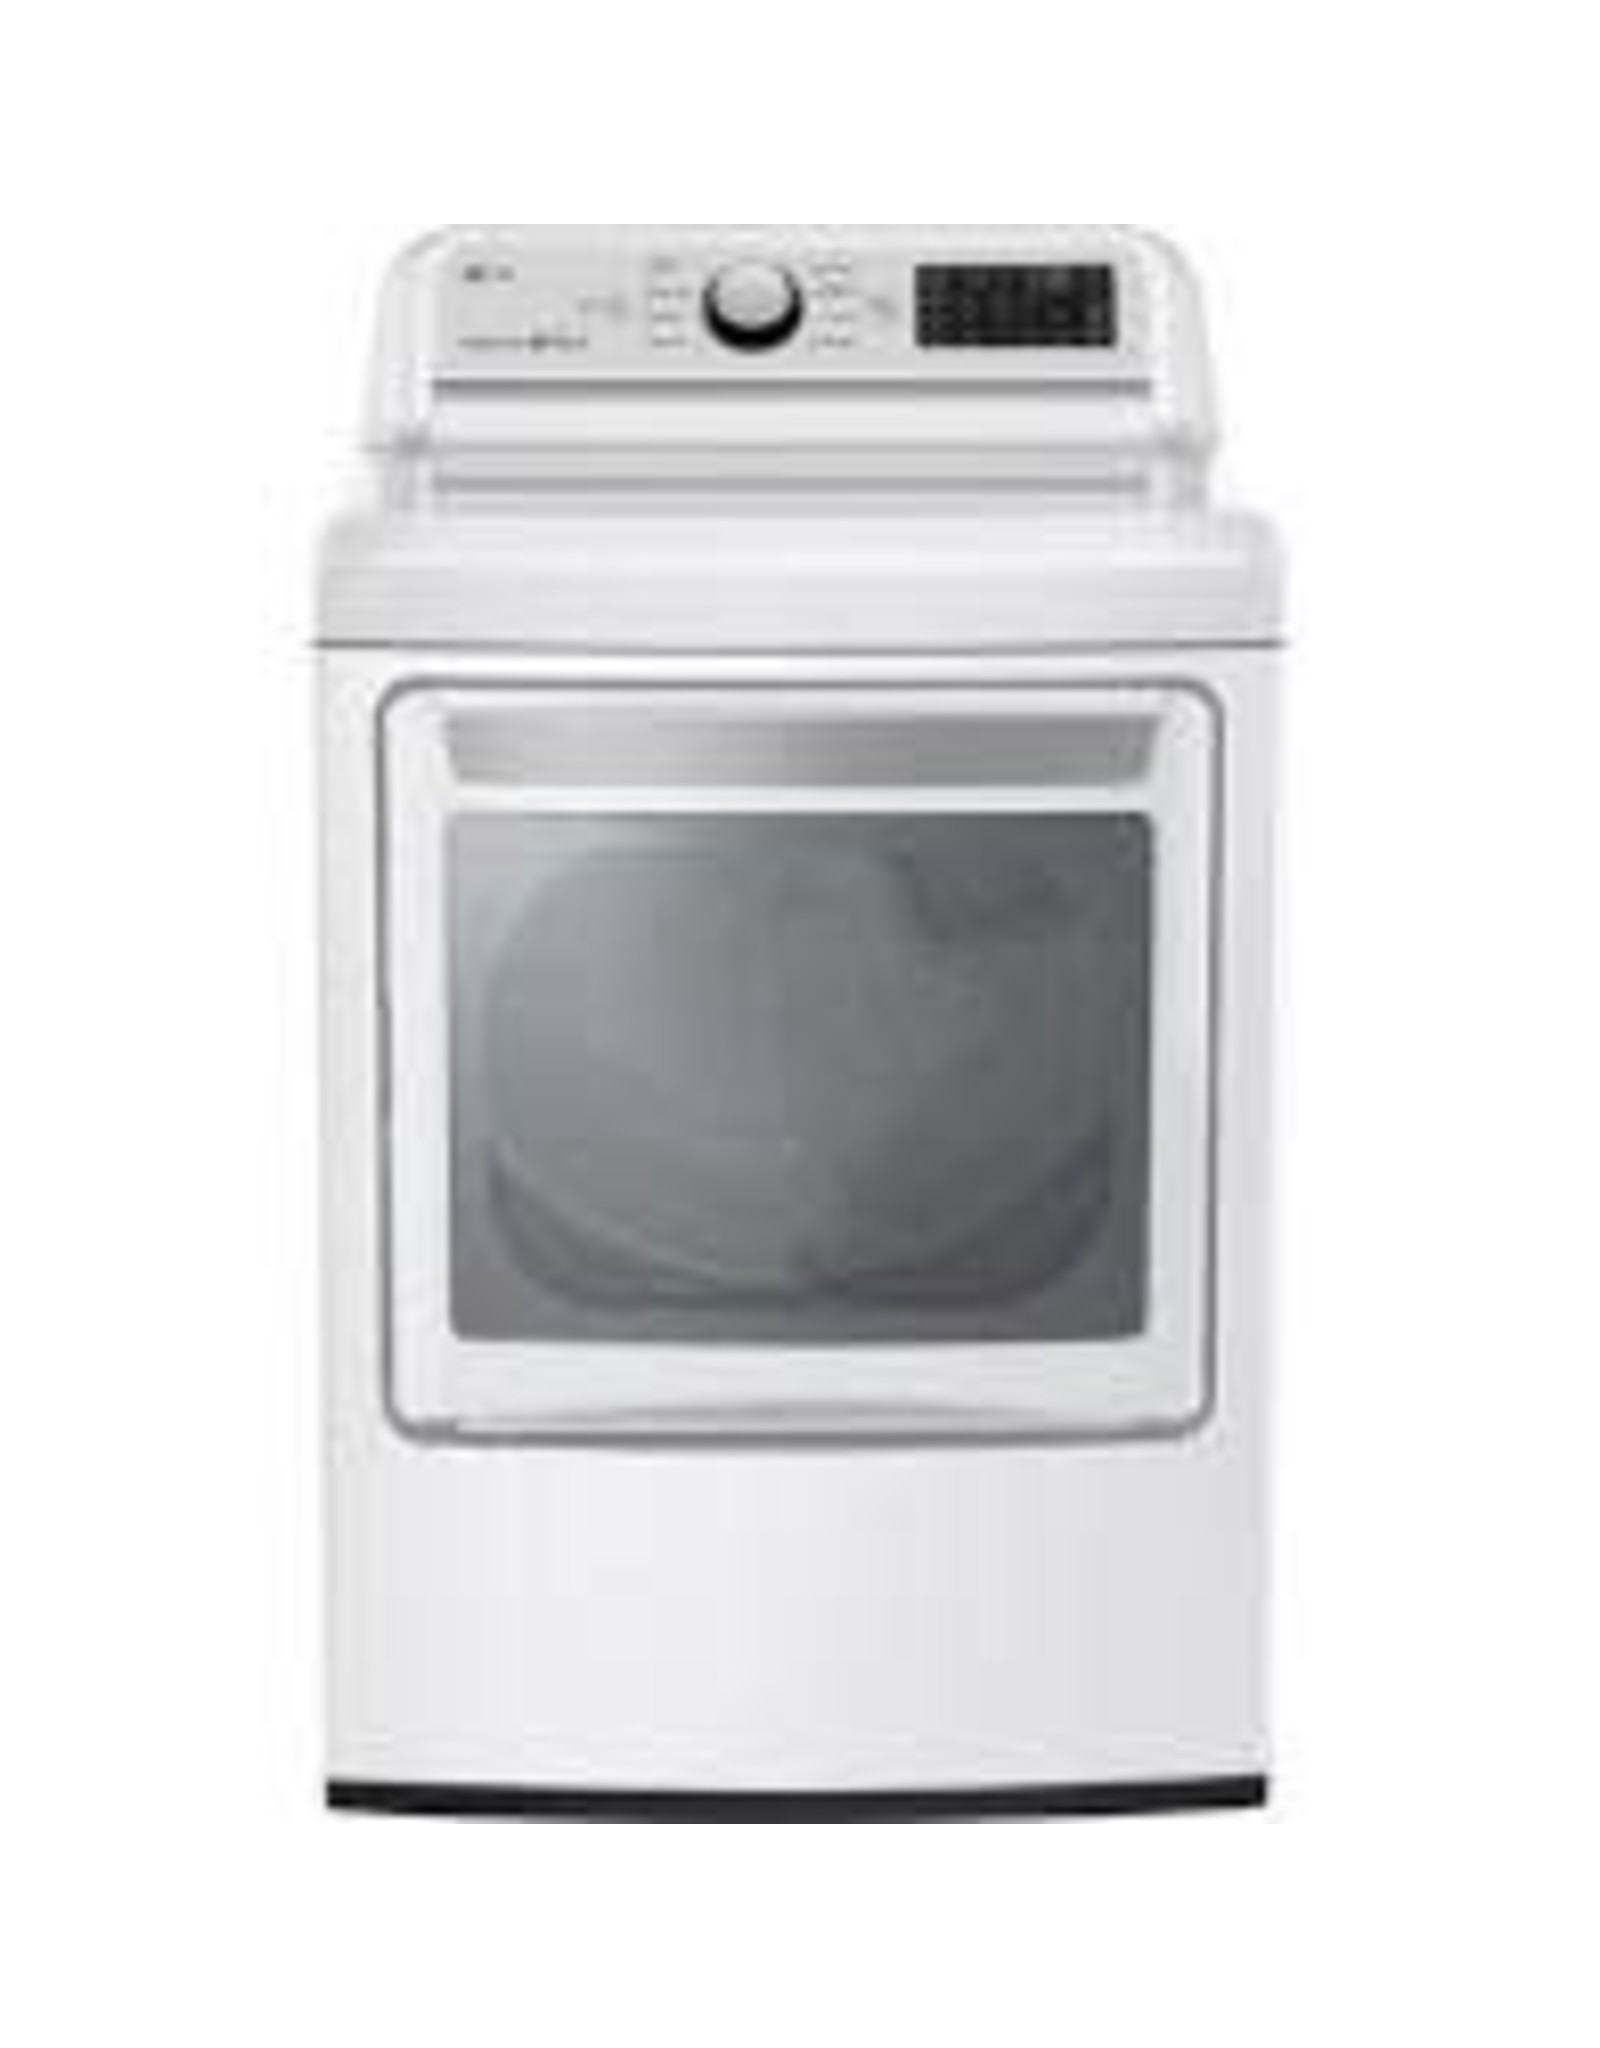 lg DLET7300WE  7.3 cu. ft. Ultra Large Smart Front Load Electric Vented Dryer with EasyLoad Door and Sensor Dry in White, ENERGY STAR